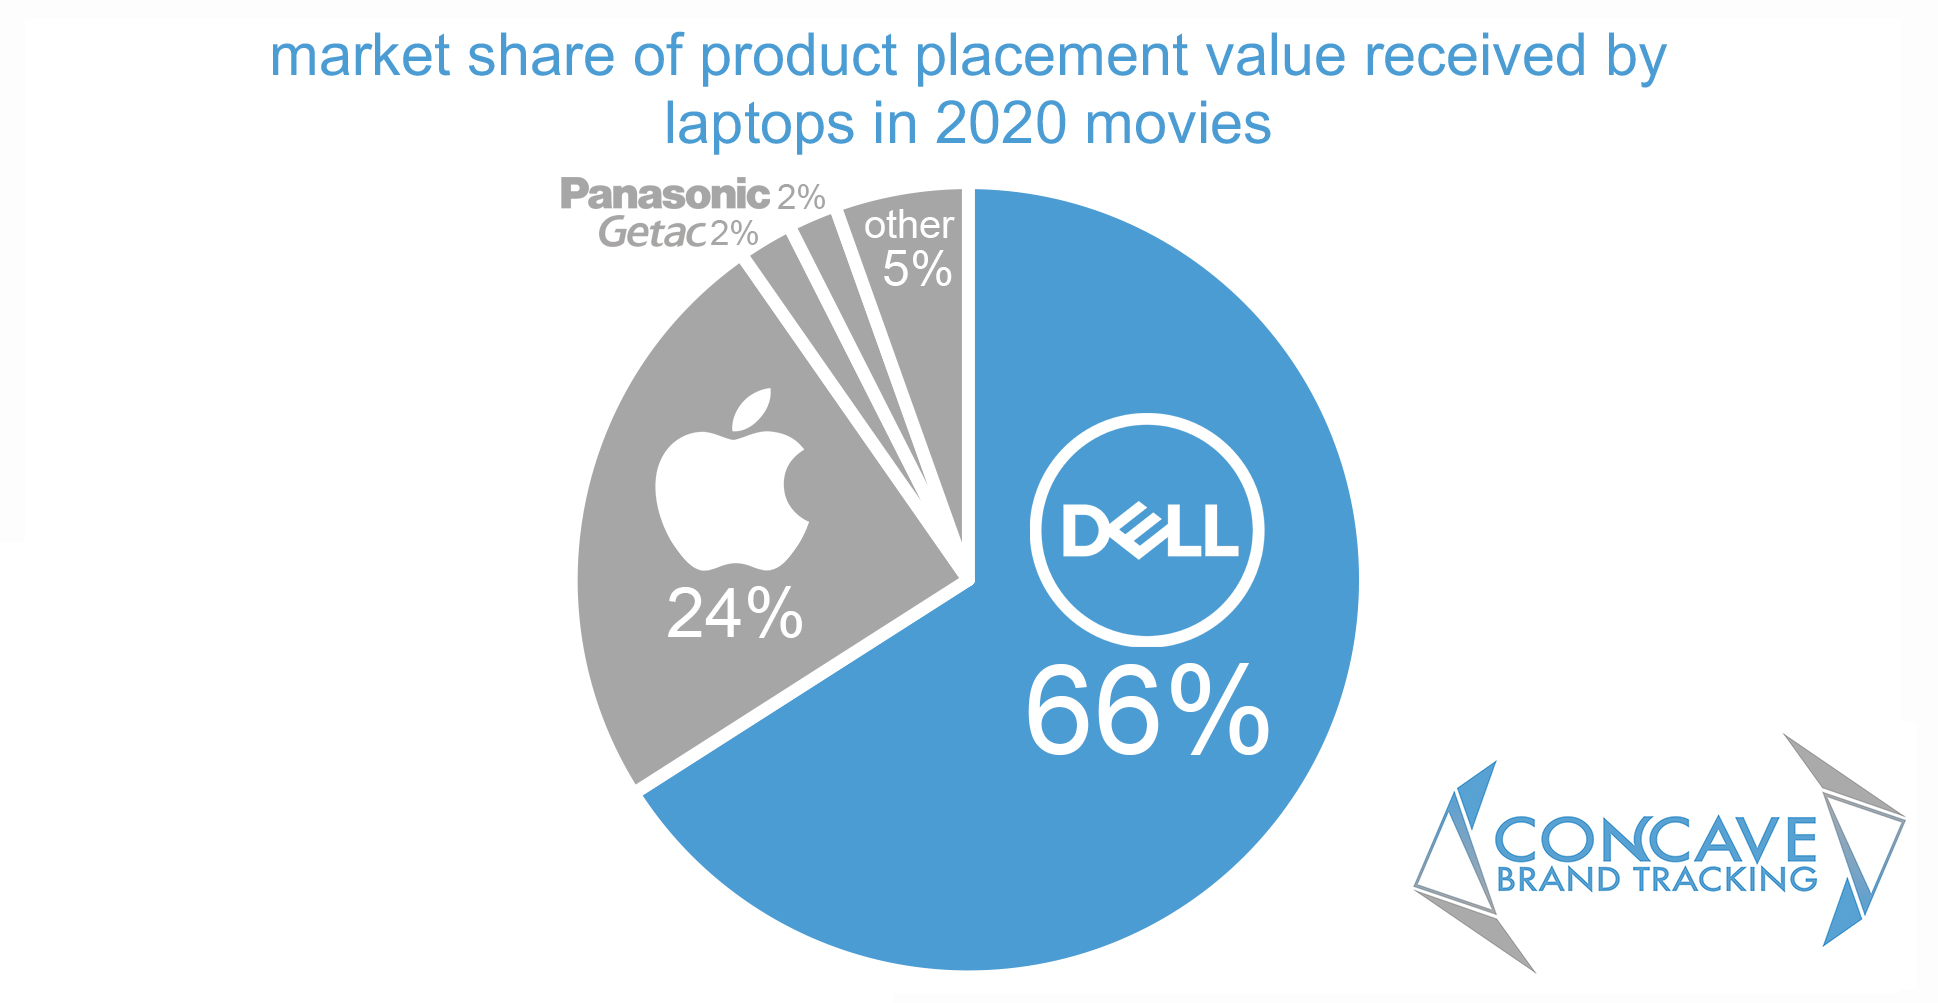 Market of share of product placement value received by laptops in 2020 films and movies. Dell had 66%, Apple 24%, Panasonicand Getac had 2%.